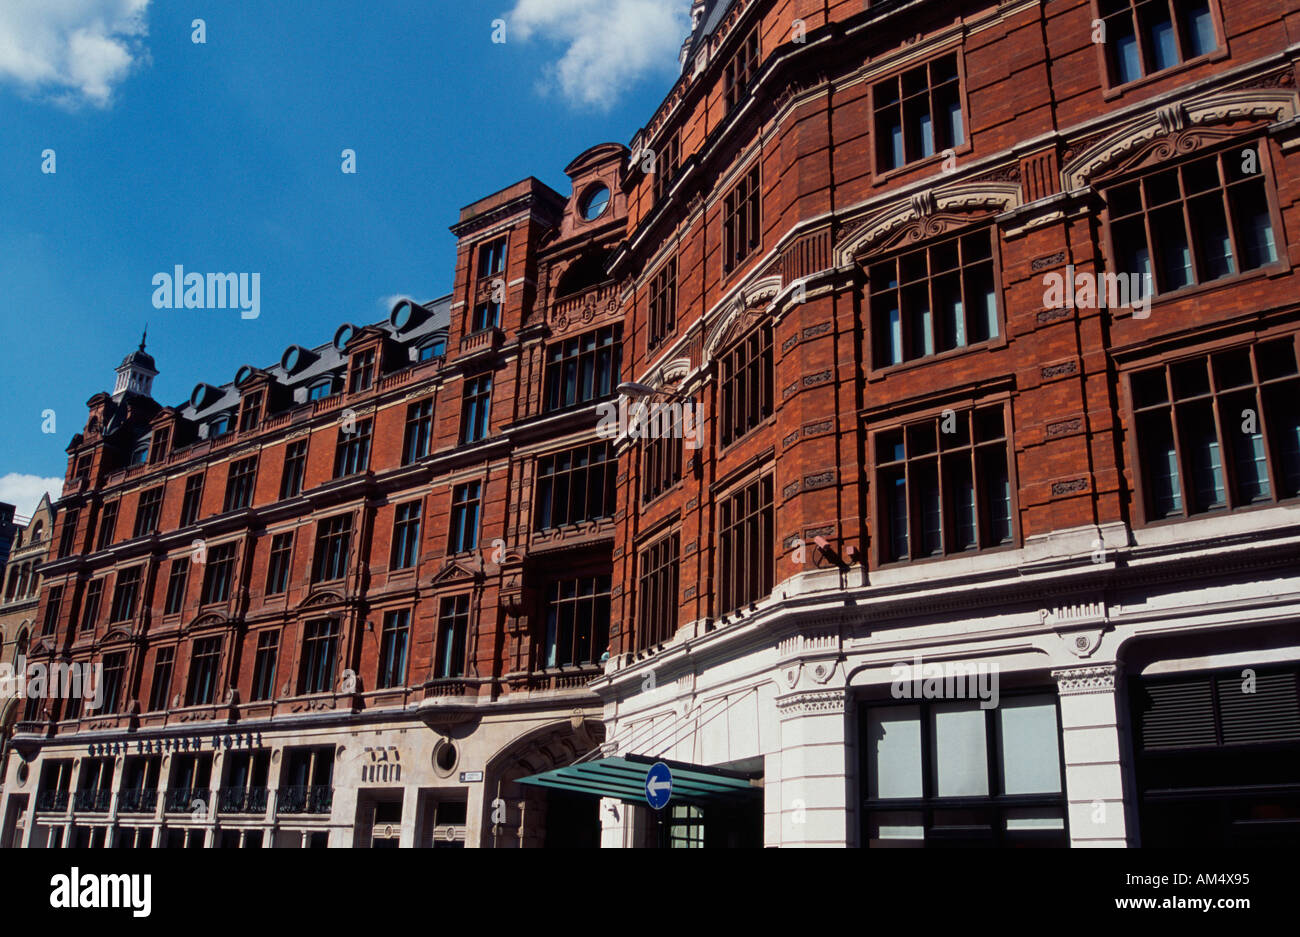 Liverpool Street Great Eastern Hotel London Uk Stock Photo